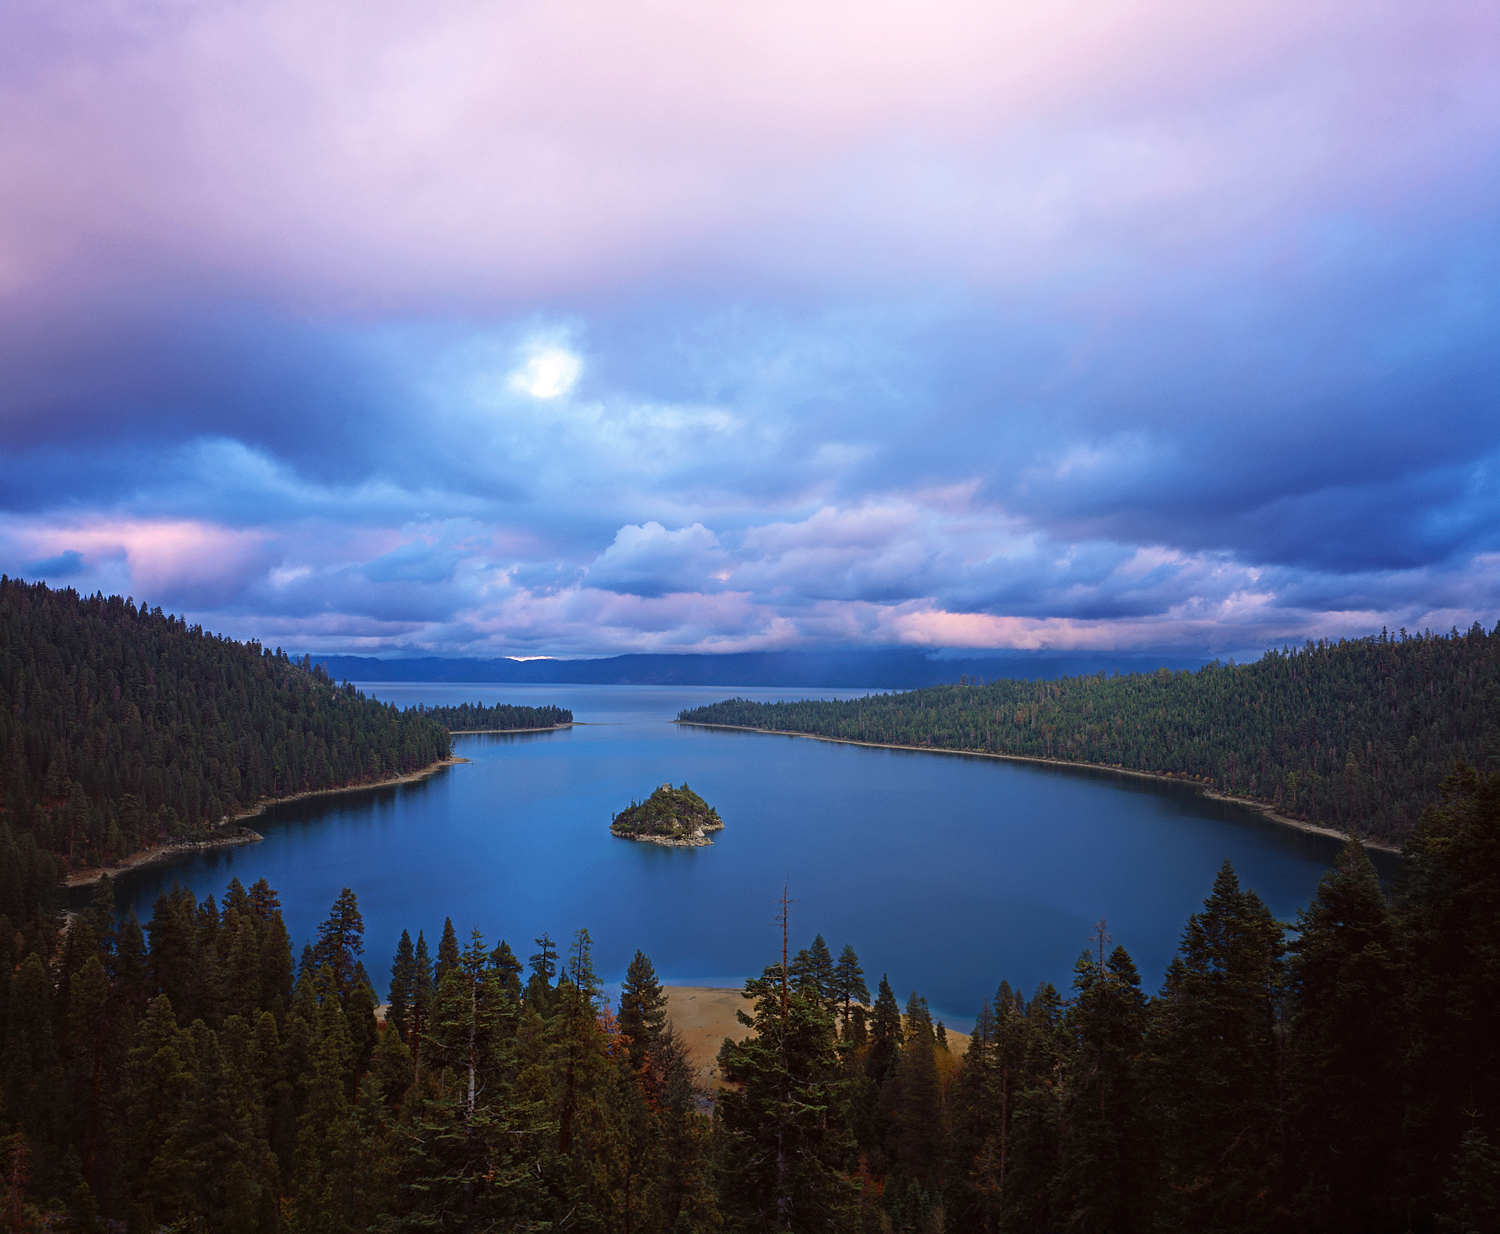 Cotton Candy Sunrise, Emerald Bay, Lake Tahoe